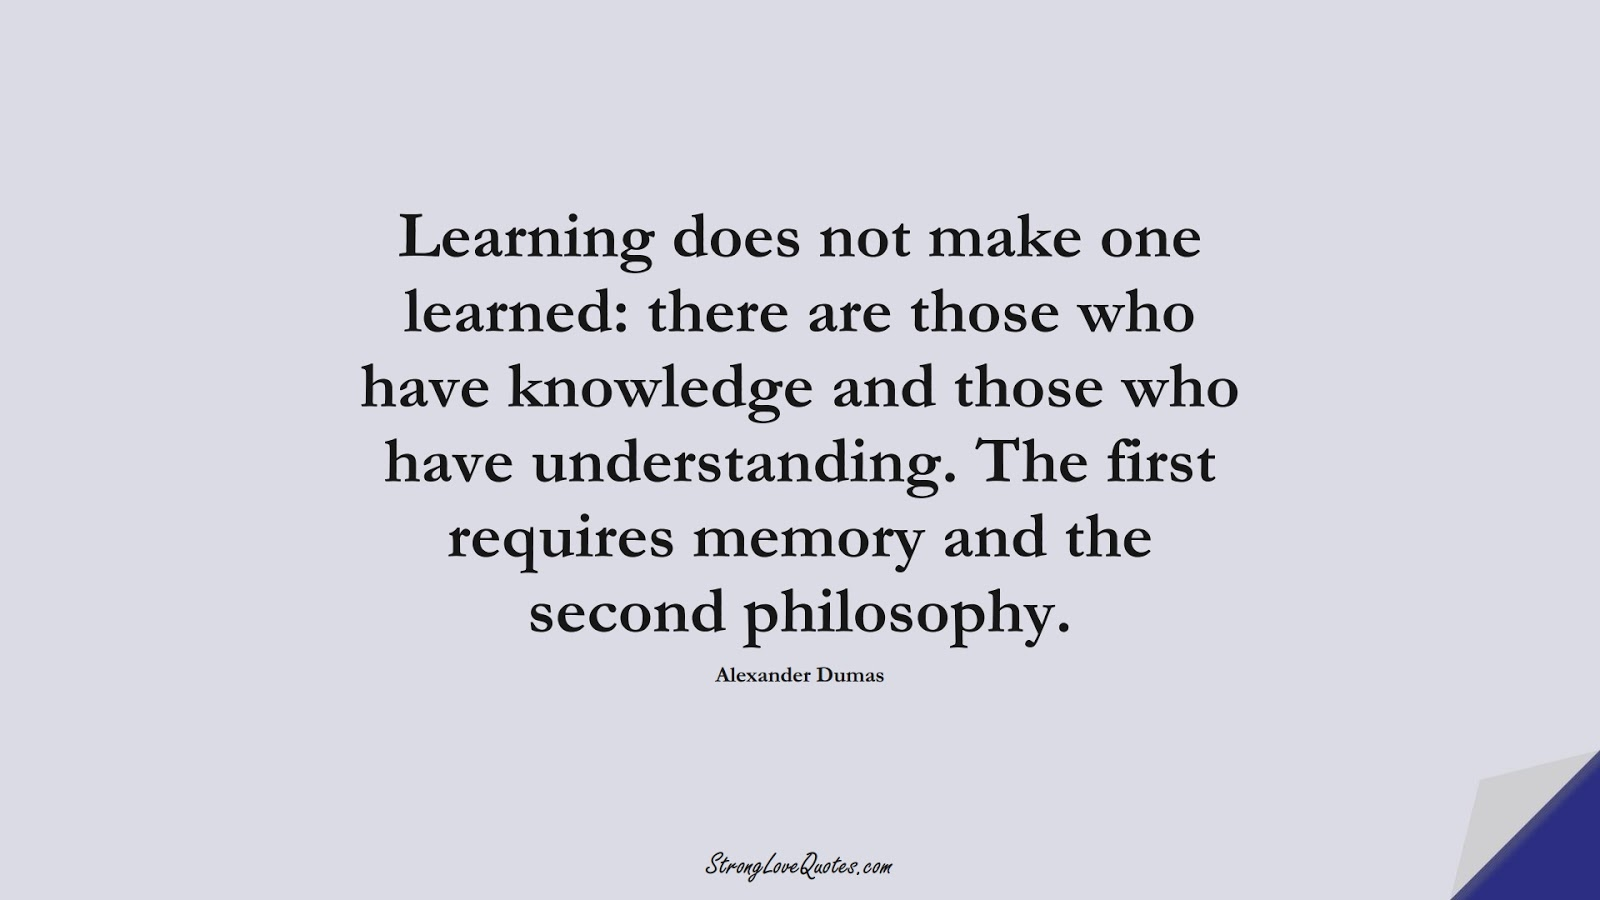 Learning does not make one learned: there are those who have knowledge and those who have understanding. The first requires memory and the second philosophy. (Alexander Dumas);  #KnowledgeQuotes